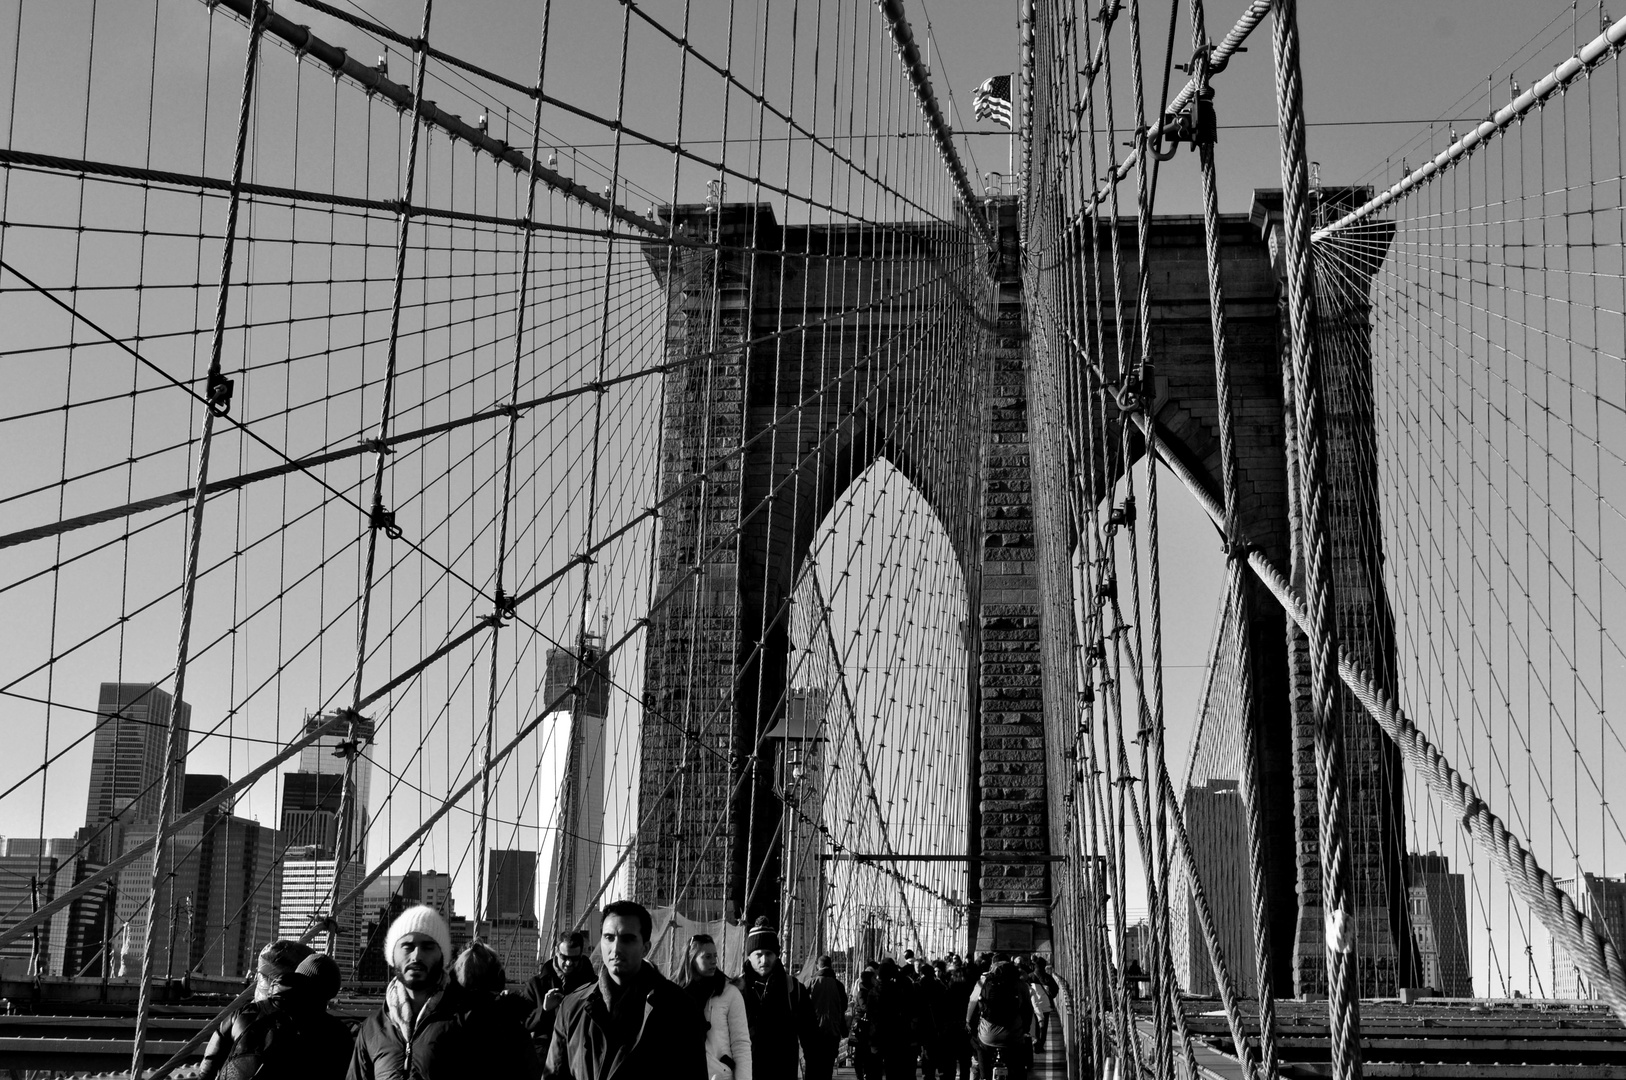 Brooklyn Bridge - New York City - Manhatten - Brooklyn